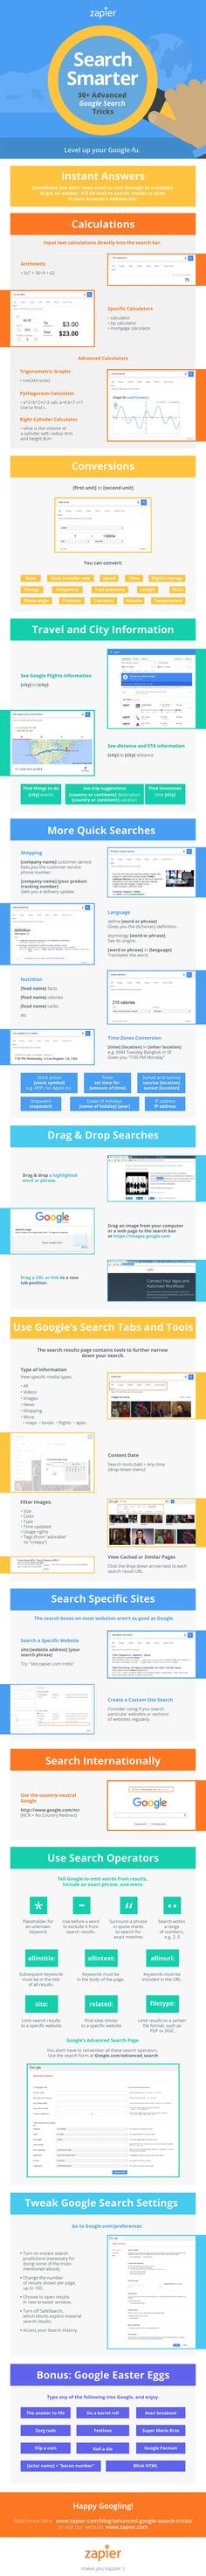 30+ Advanced Google Search Tricks to Make Your Life Easier [Infographic]